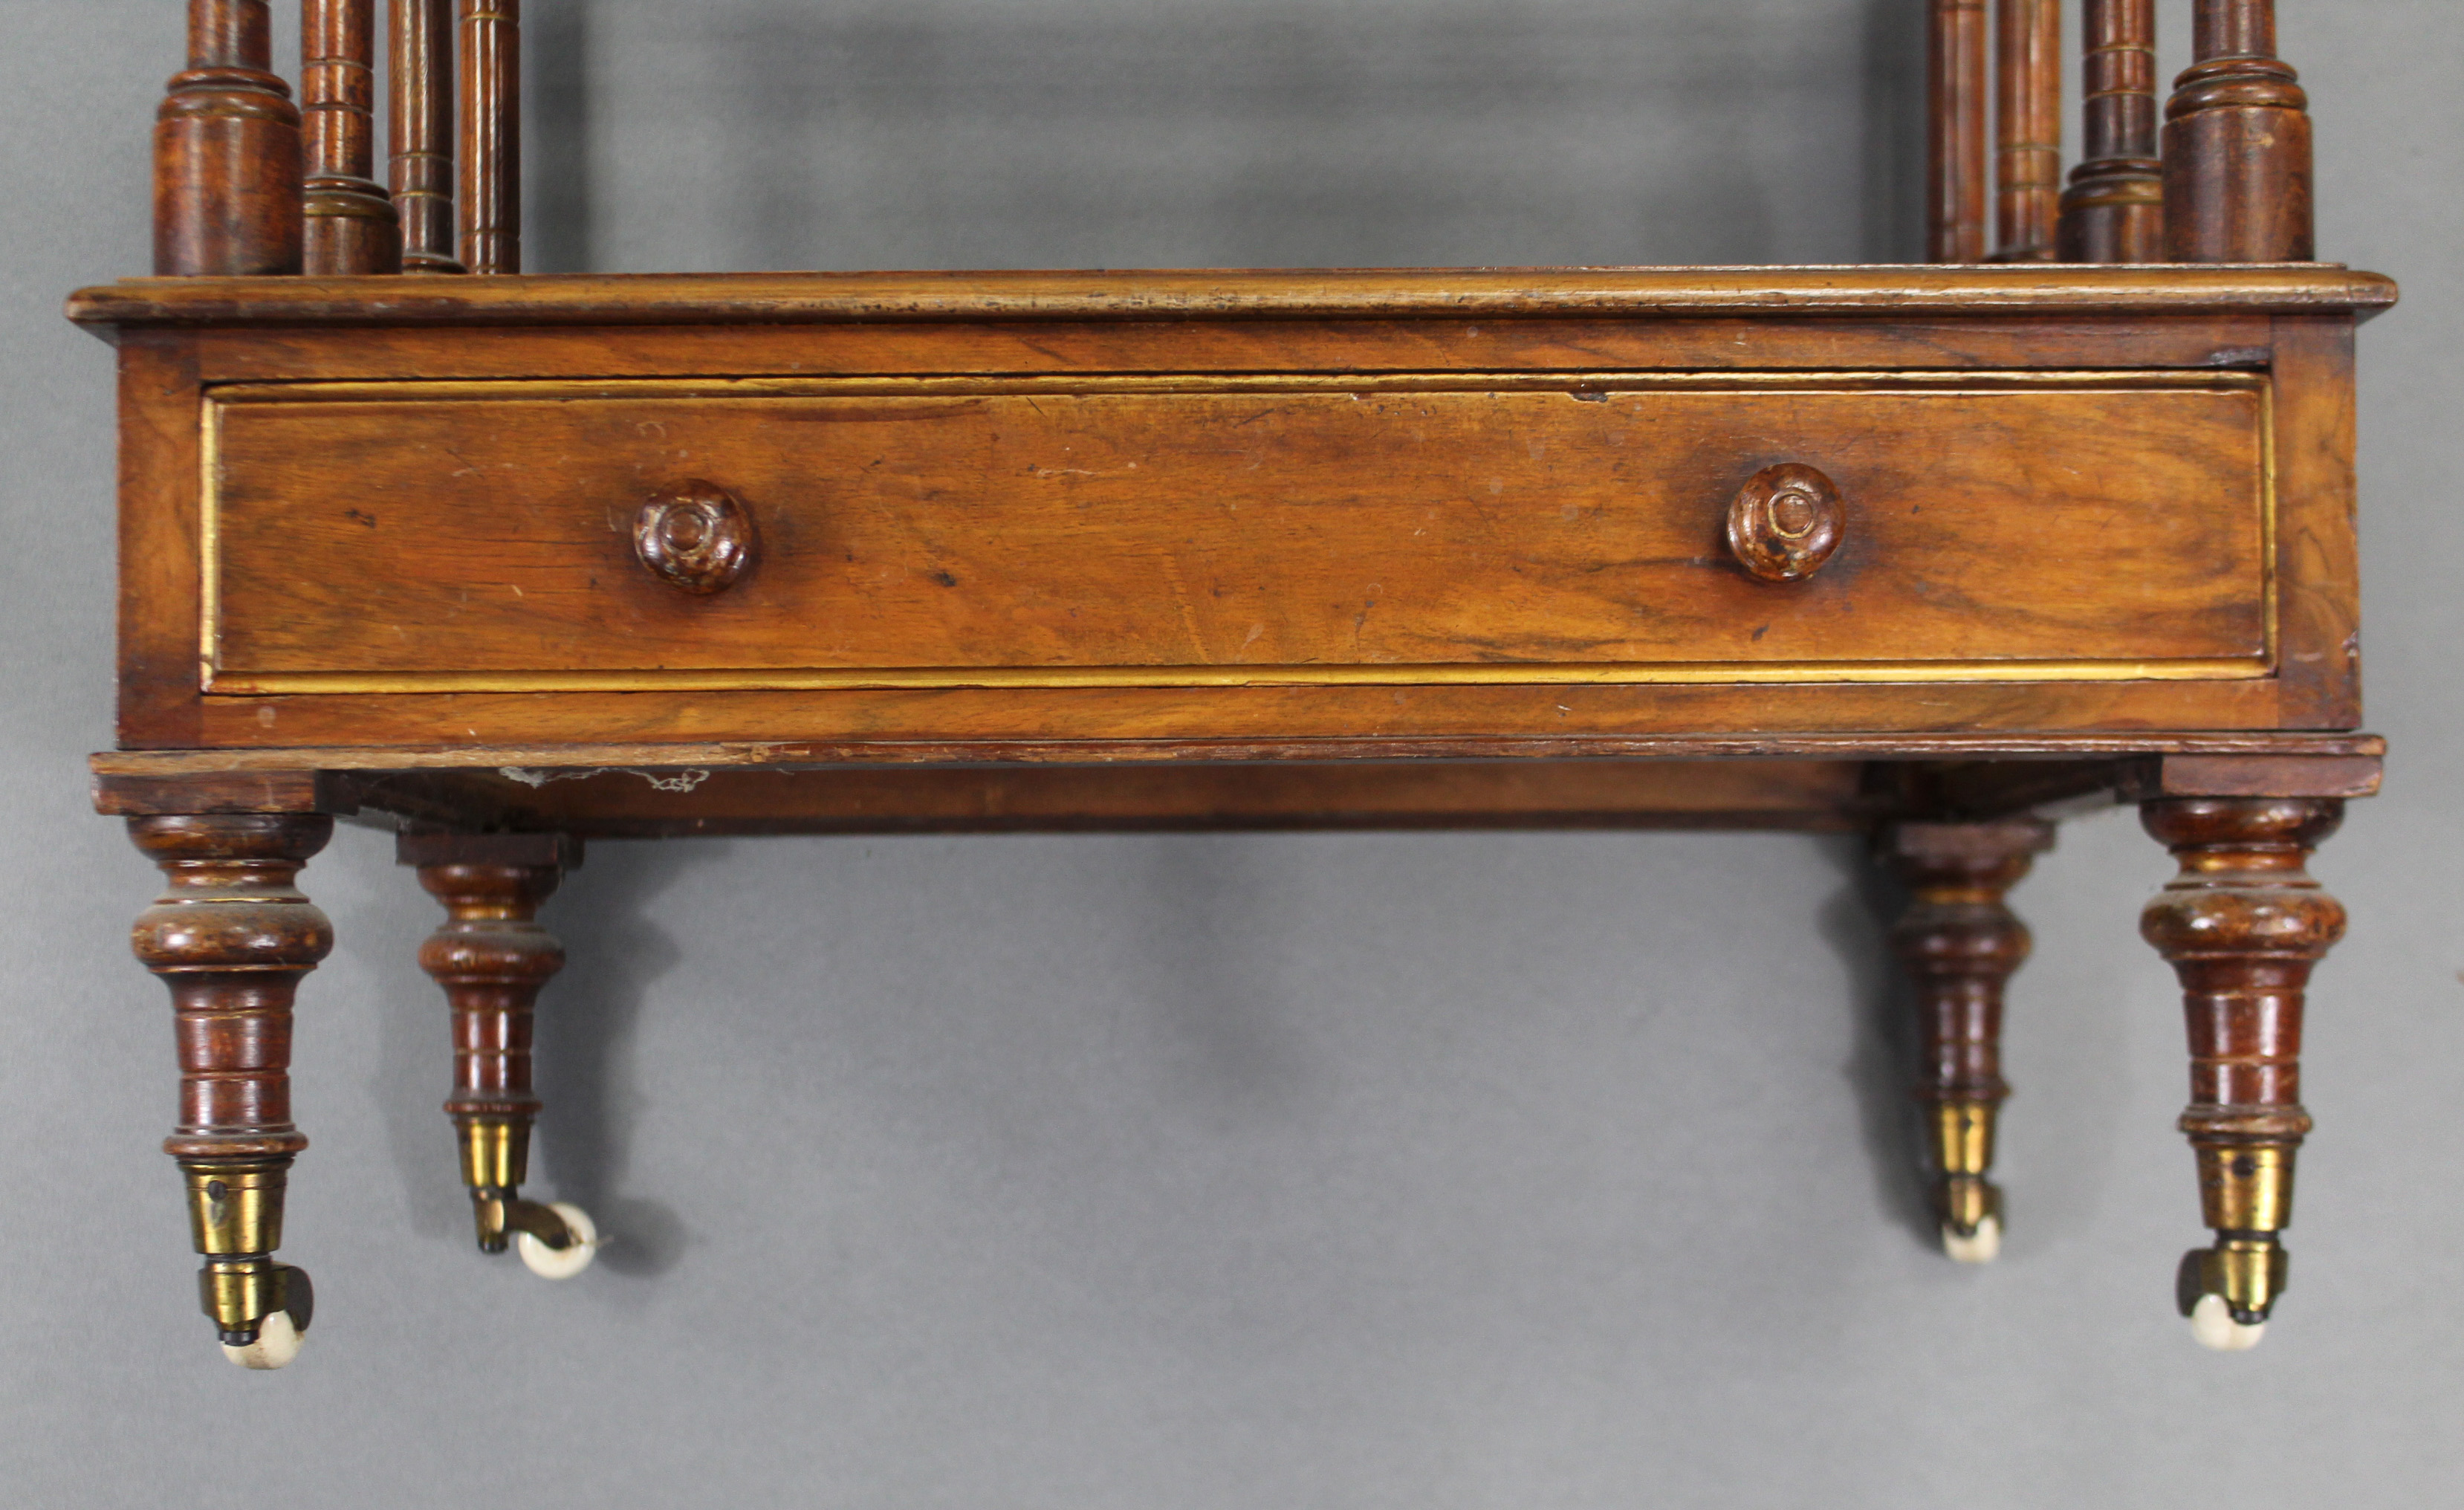 Lot 328 - An early Victorian mahogany & parcel-gilt three-division canterbury with turned uprights & dividers,